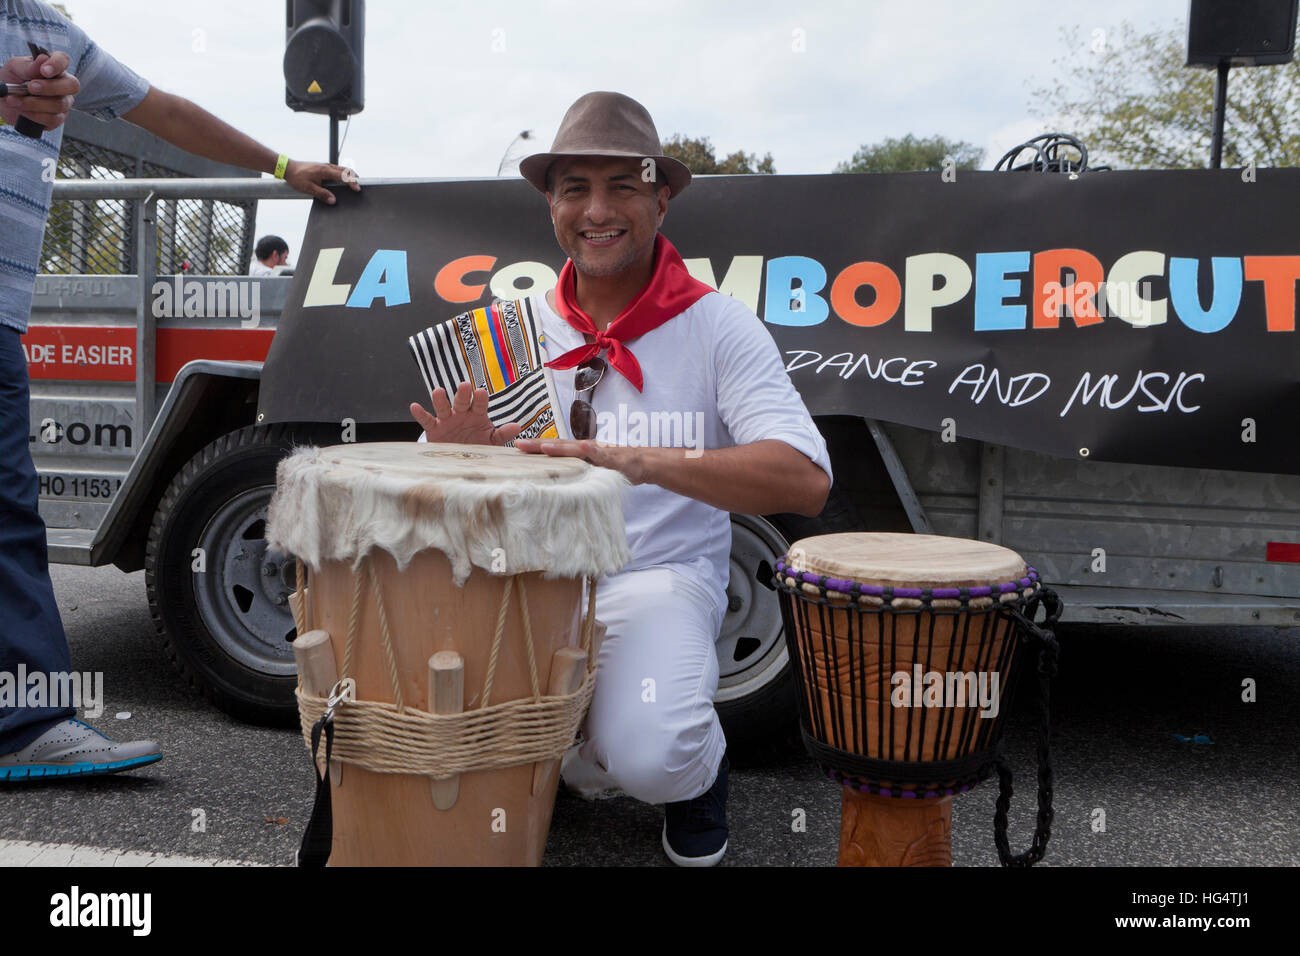 Argentinian musician playing hand crafted bata drums during Latin festival - Washington, DC USA - Stock Image